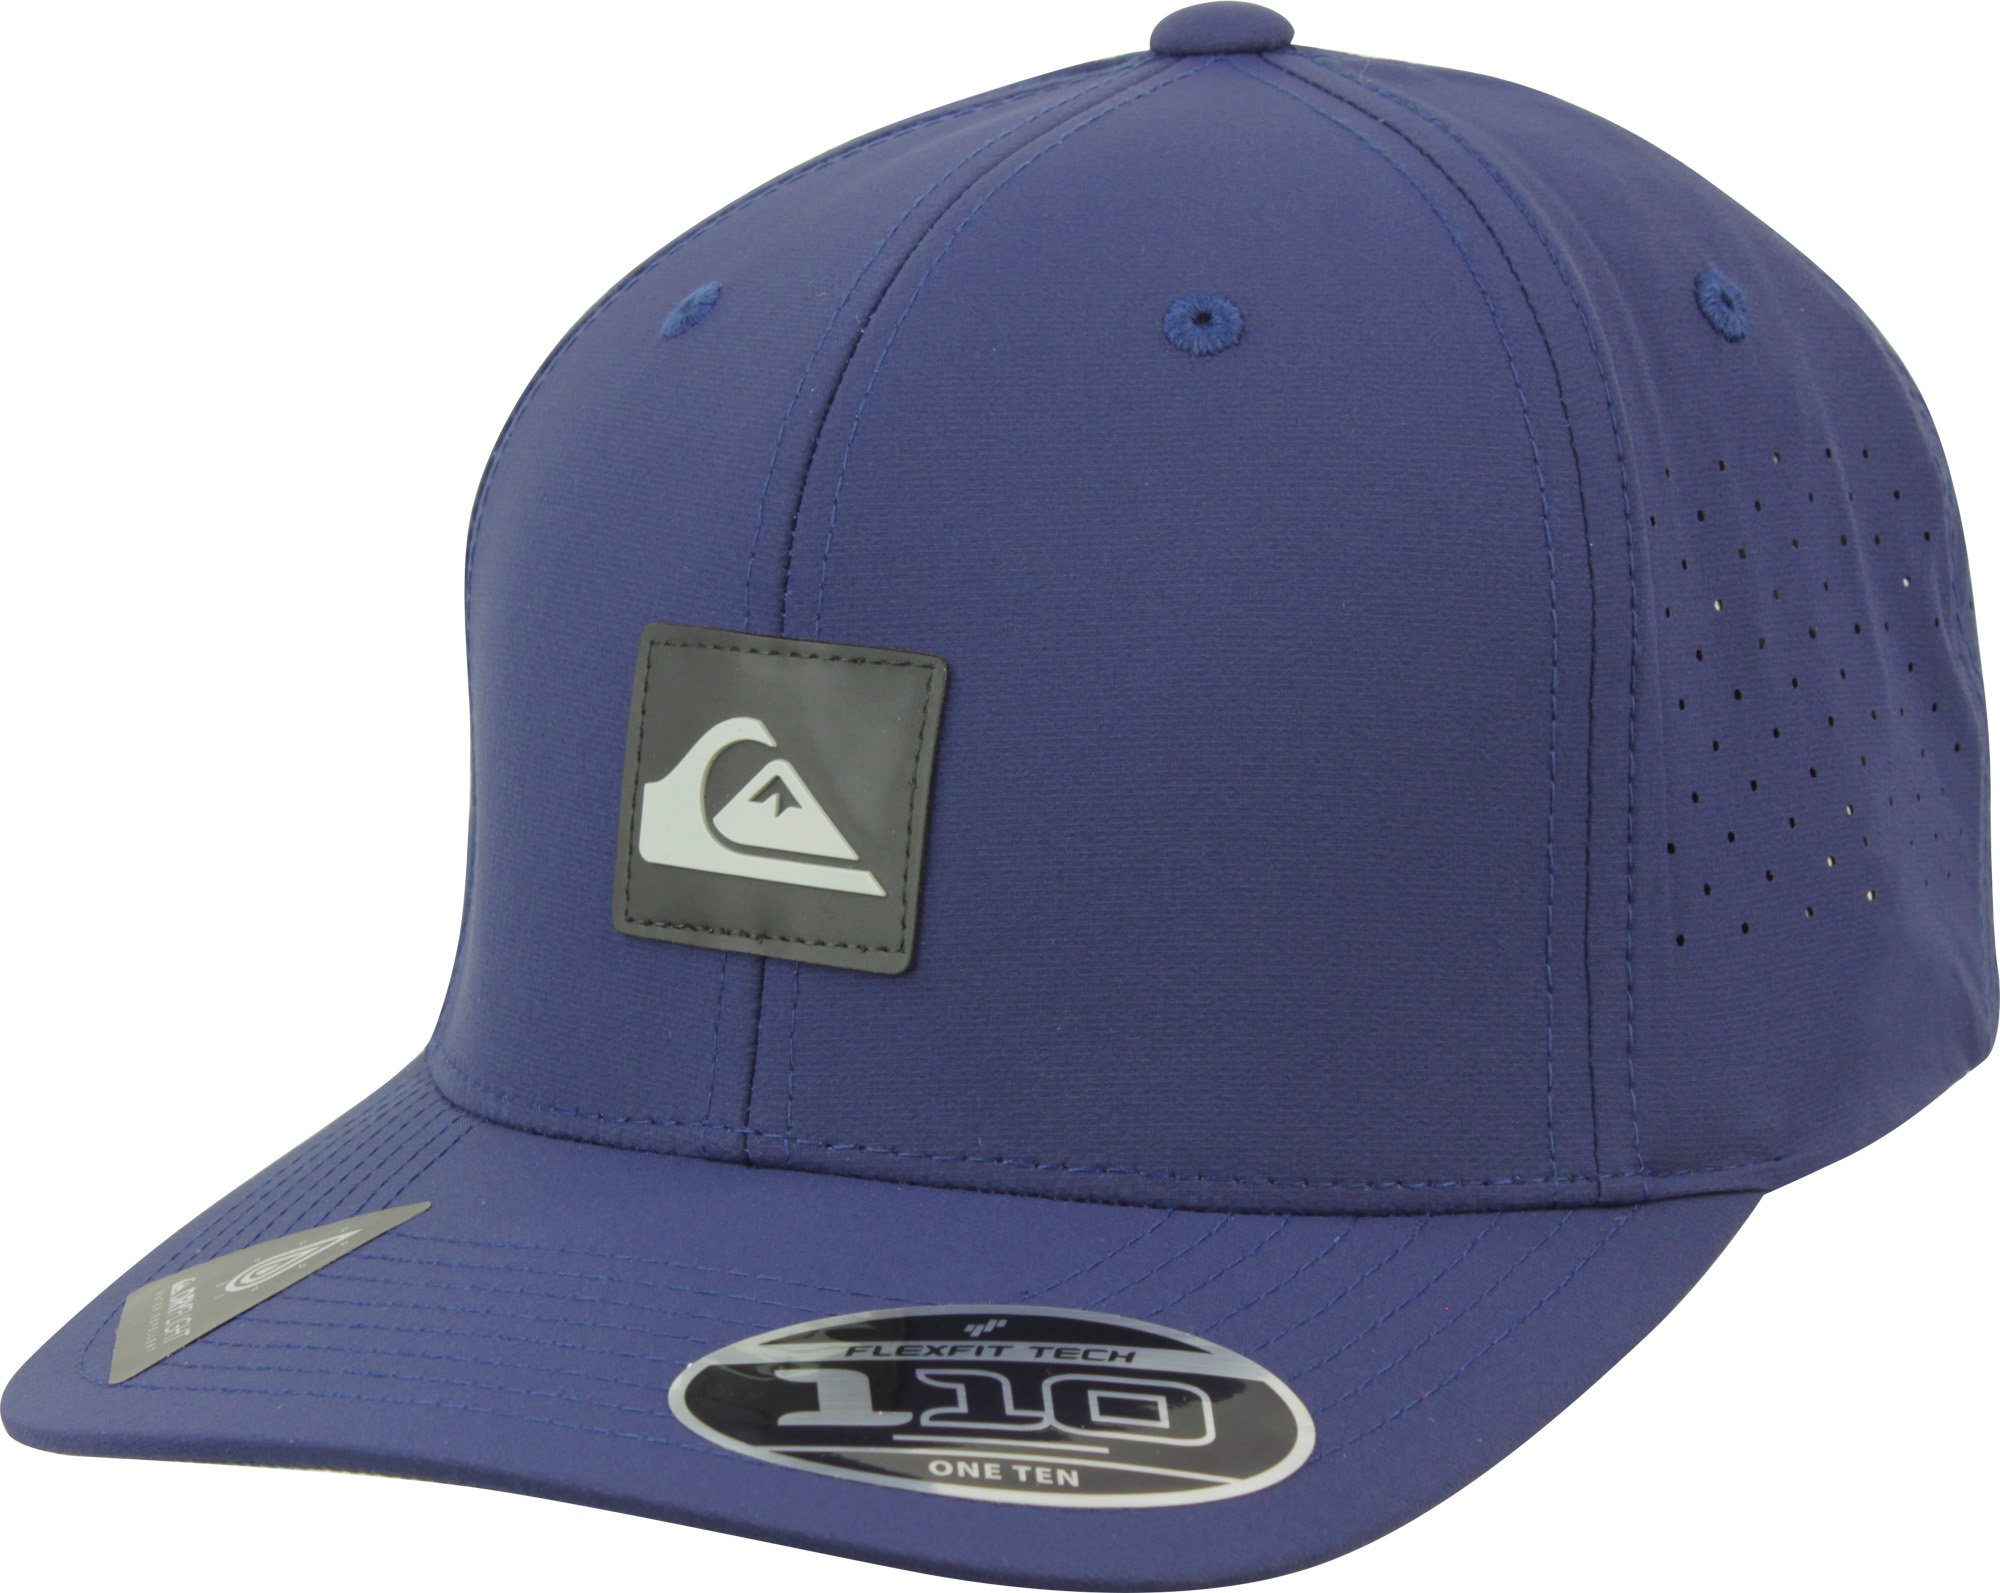 57f05c21140de Details about Quiksilver Mens Adapted 110 Amphibian Strapback Adjustable Hat  - Navy Blazer